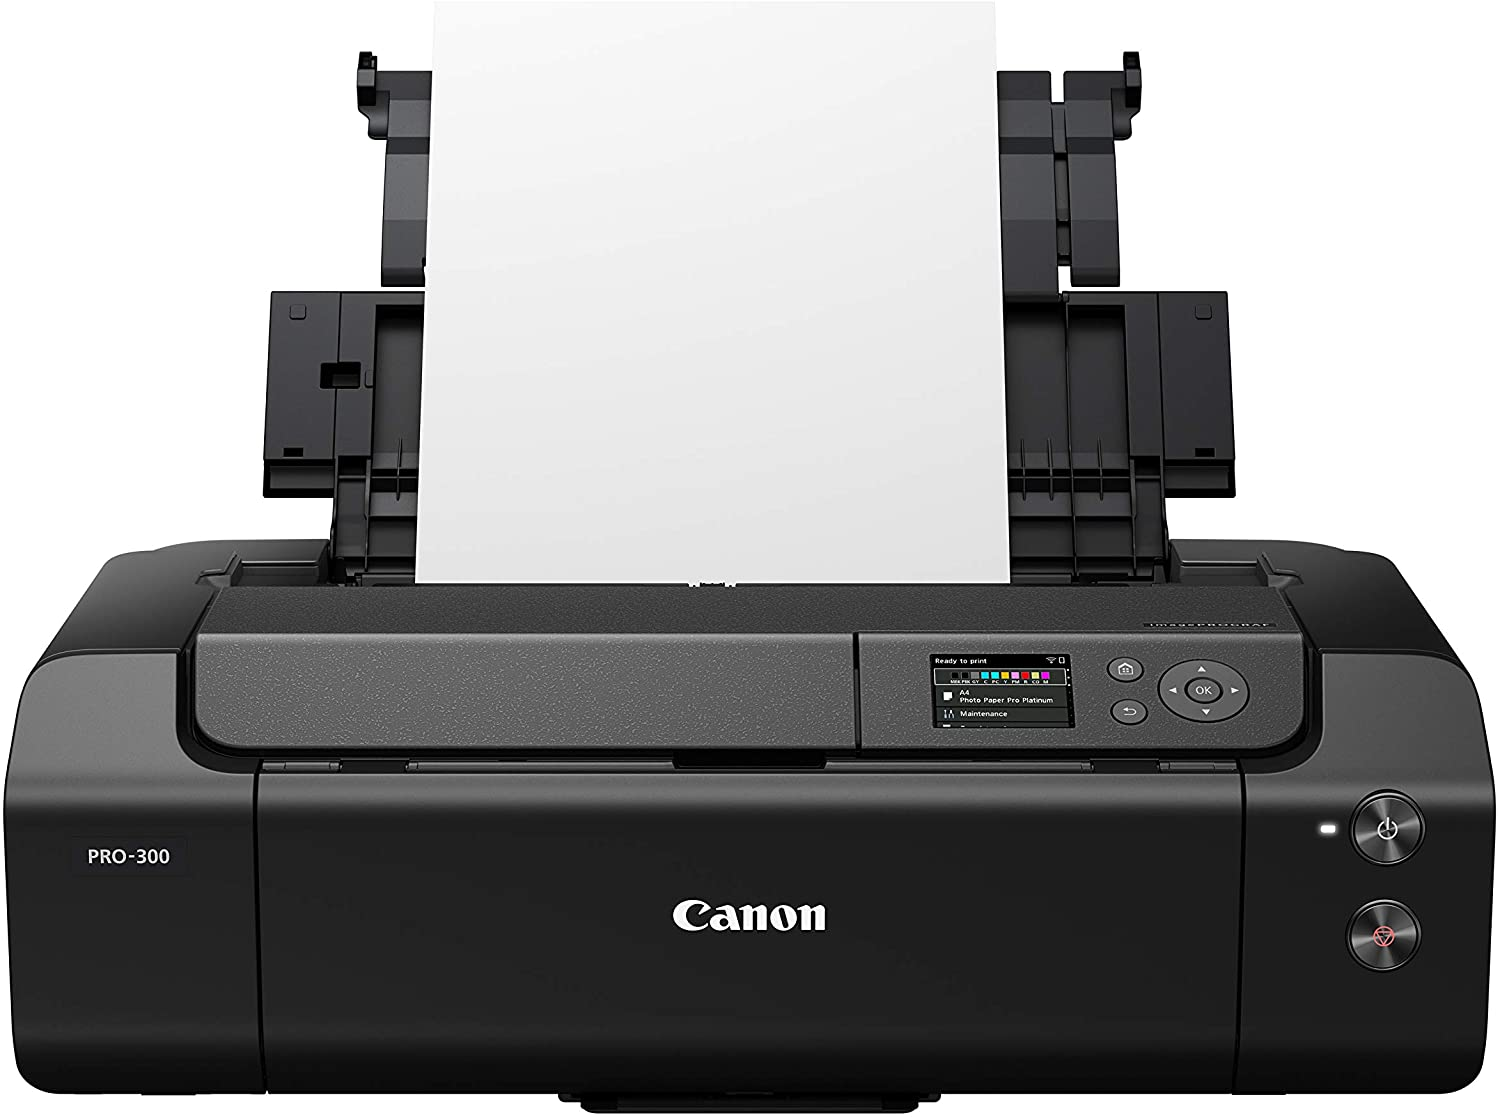 3.0 LCD Screen with Profession Print /& Layout Software and Mobile Device Printing Black Canon imagePROGRAF PRO-300 Wireless Color Wide-Format Printer Prints up to 13X 19